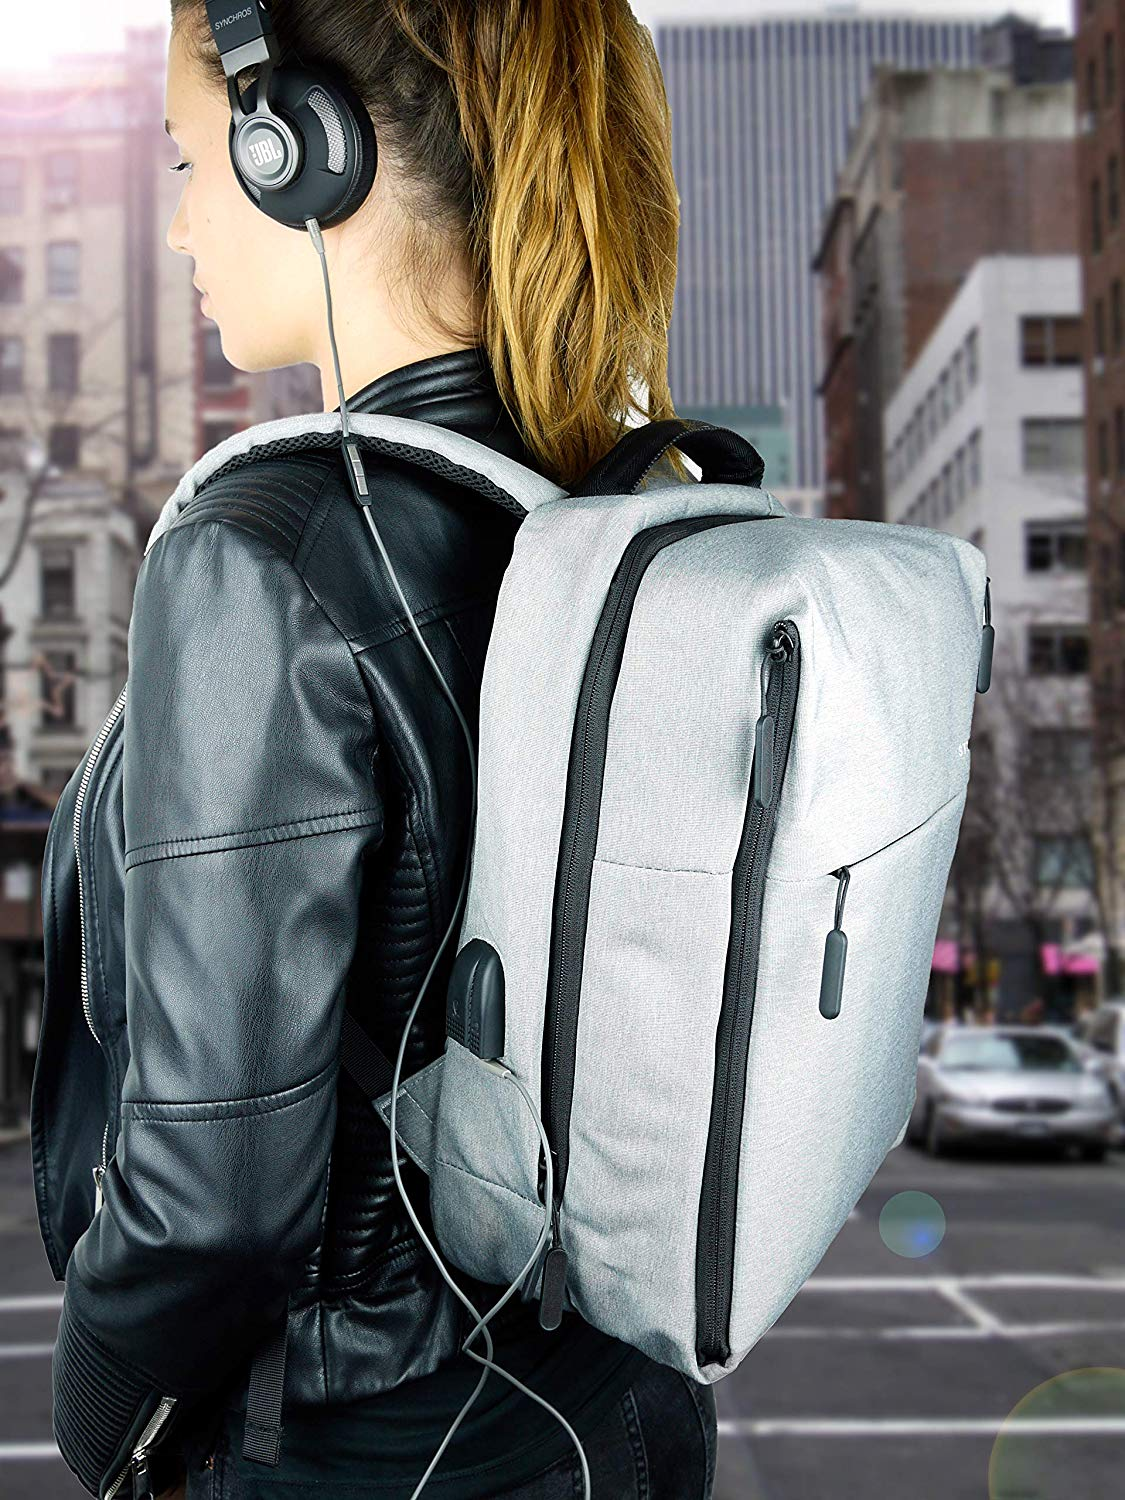 Style & Sons Protector Anti-Diebstahl Rucksack 15,6 Zoll mit USB Ladeanschluss Laptop Notebook Backpack